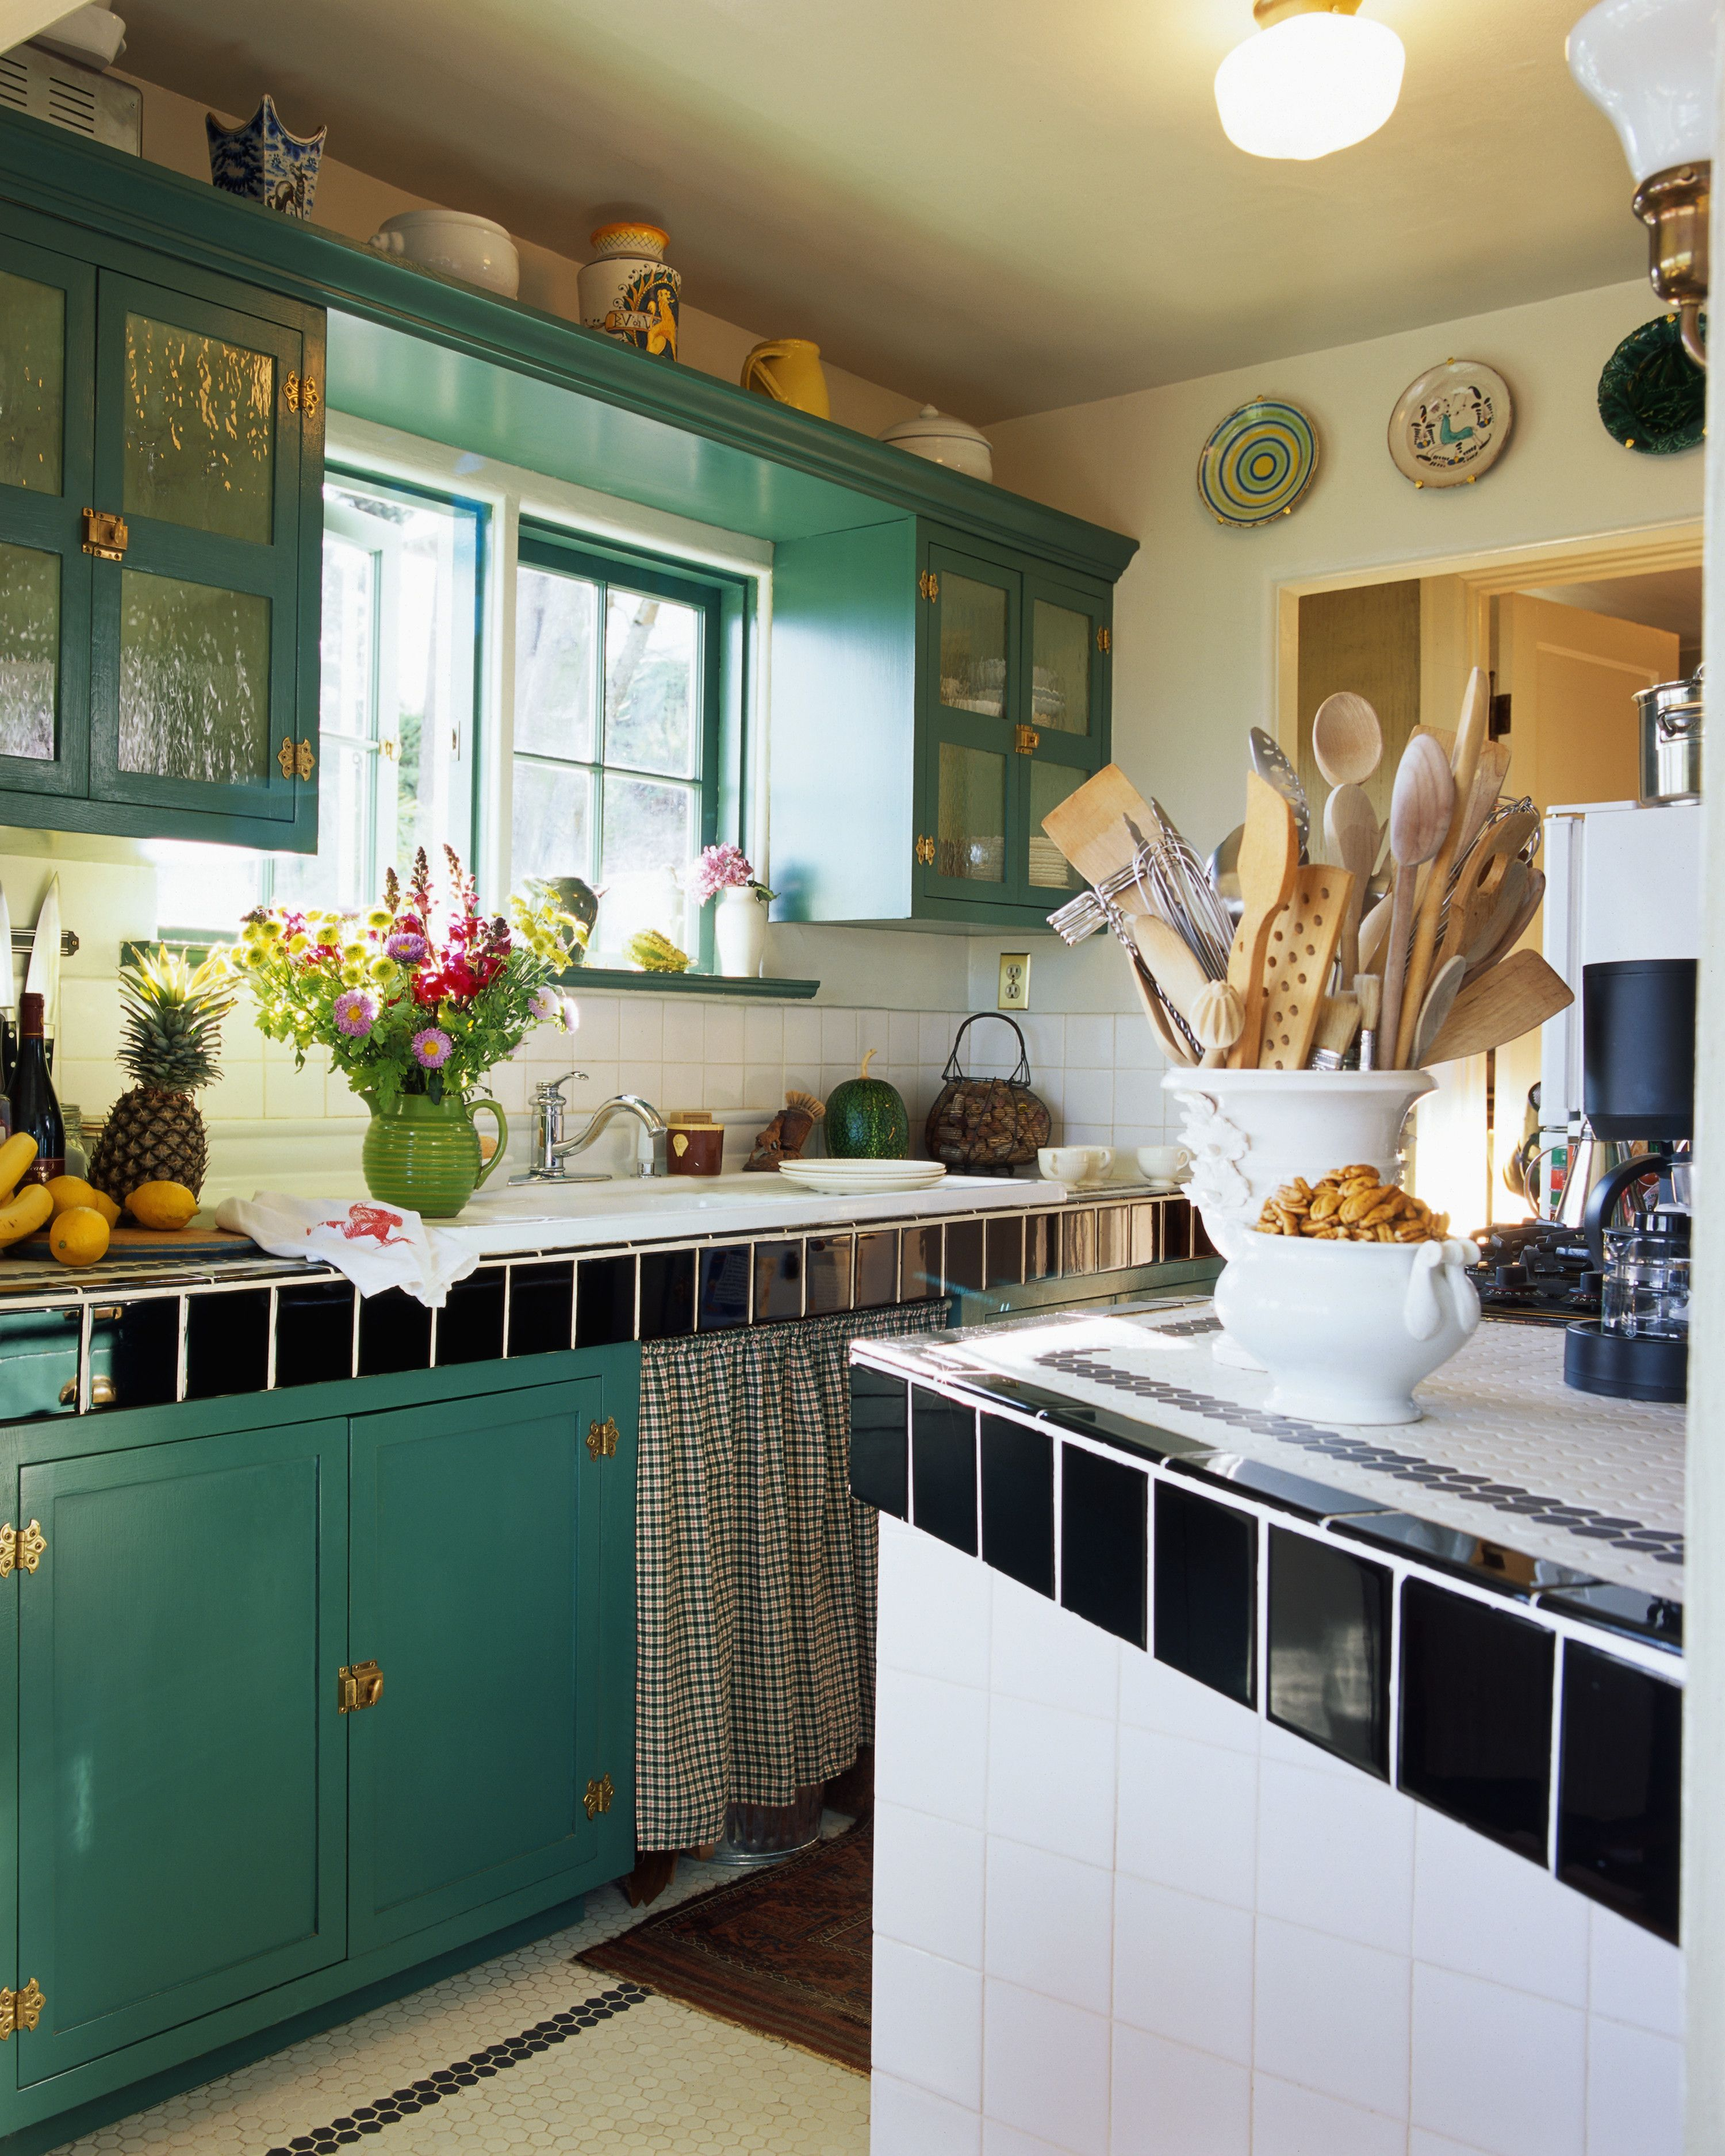 18 ideas for decorating above kitchen